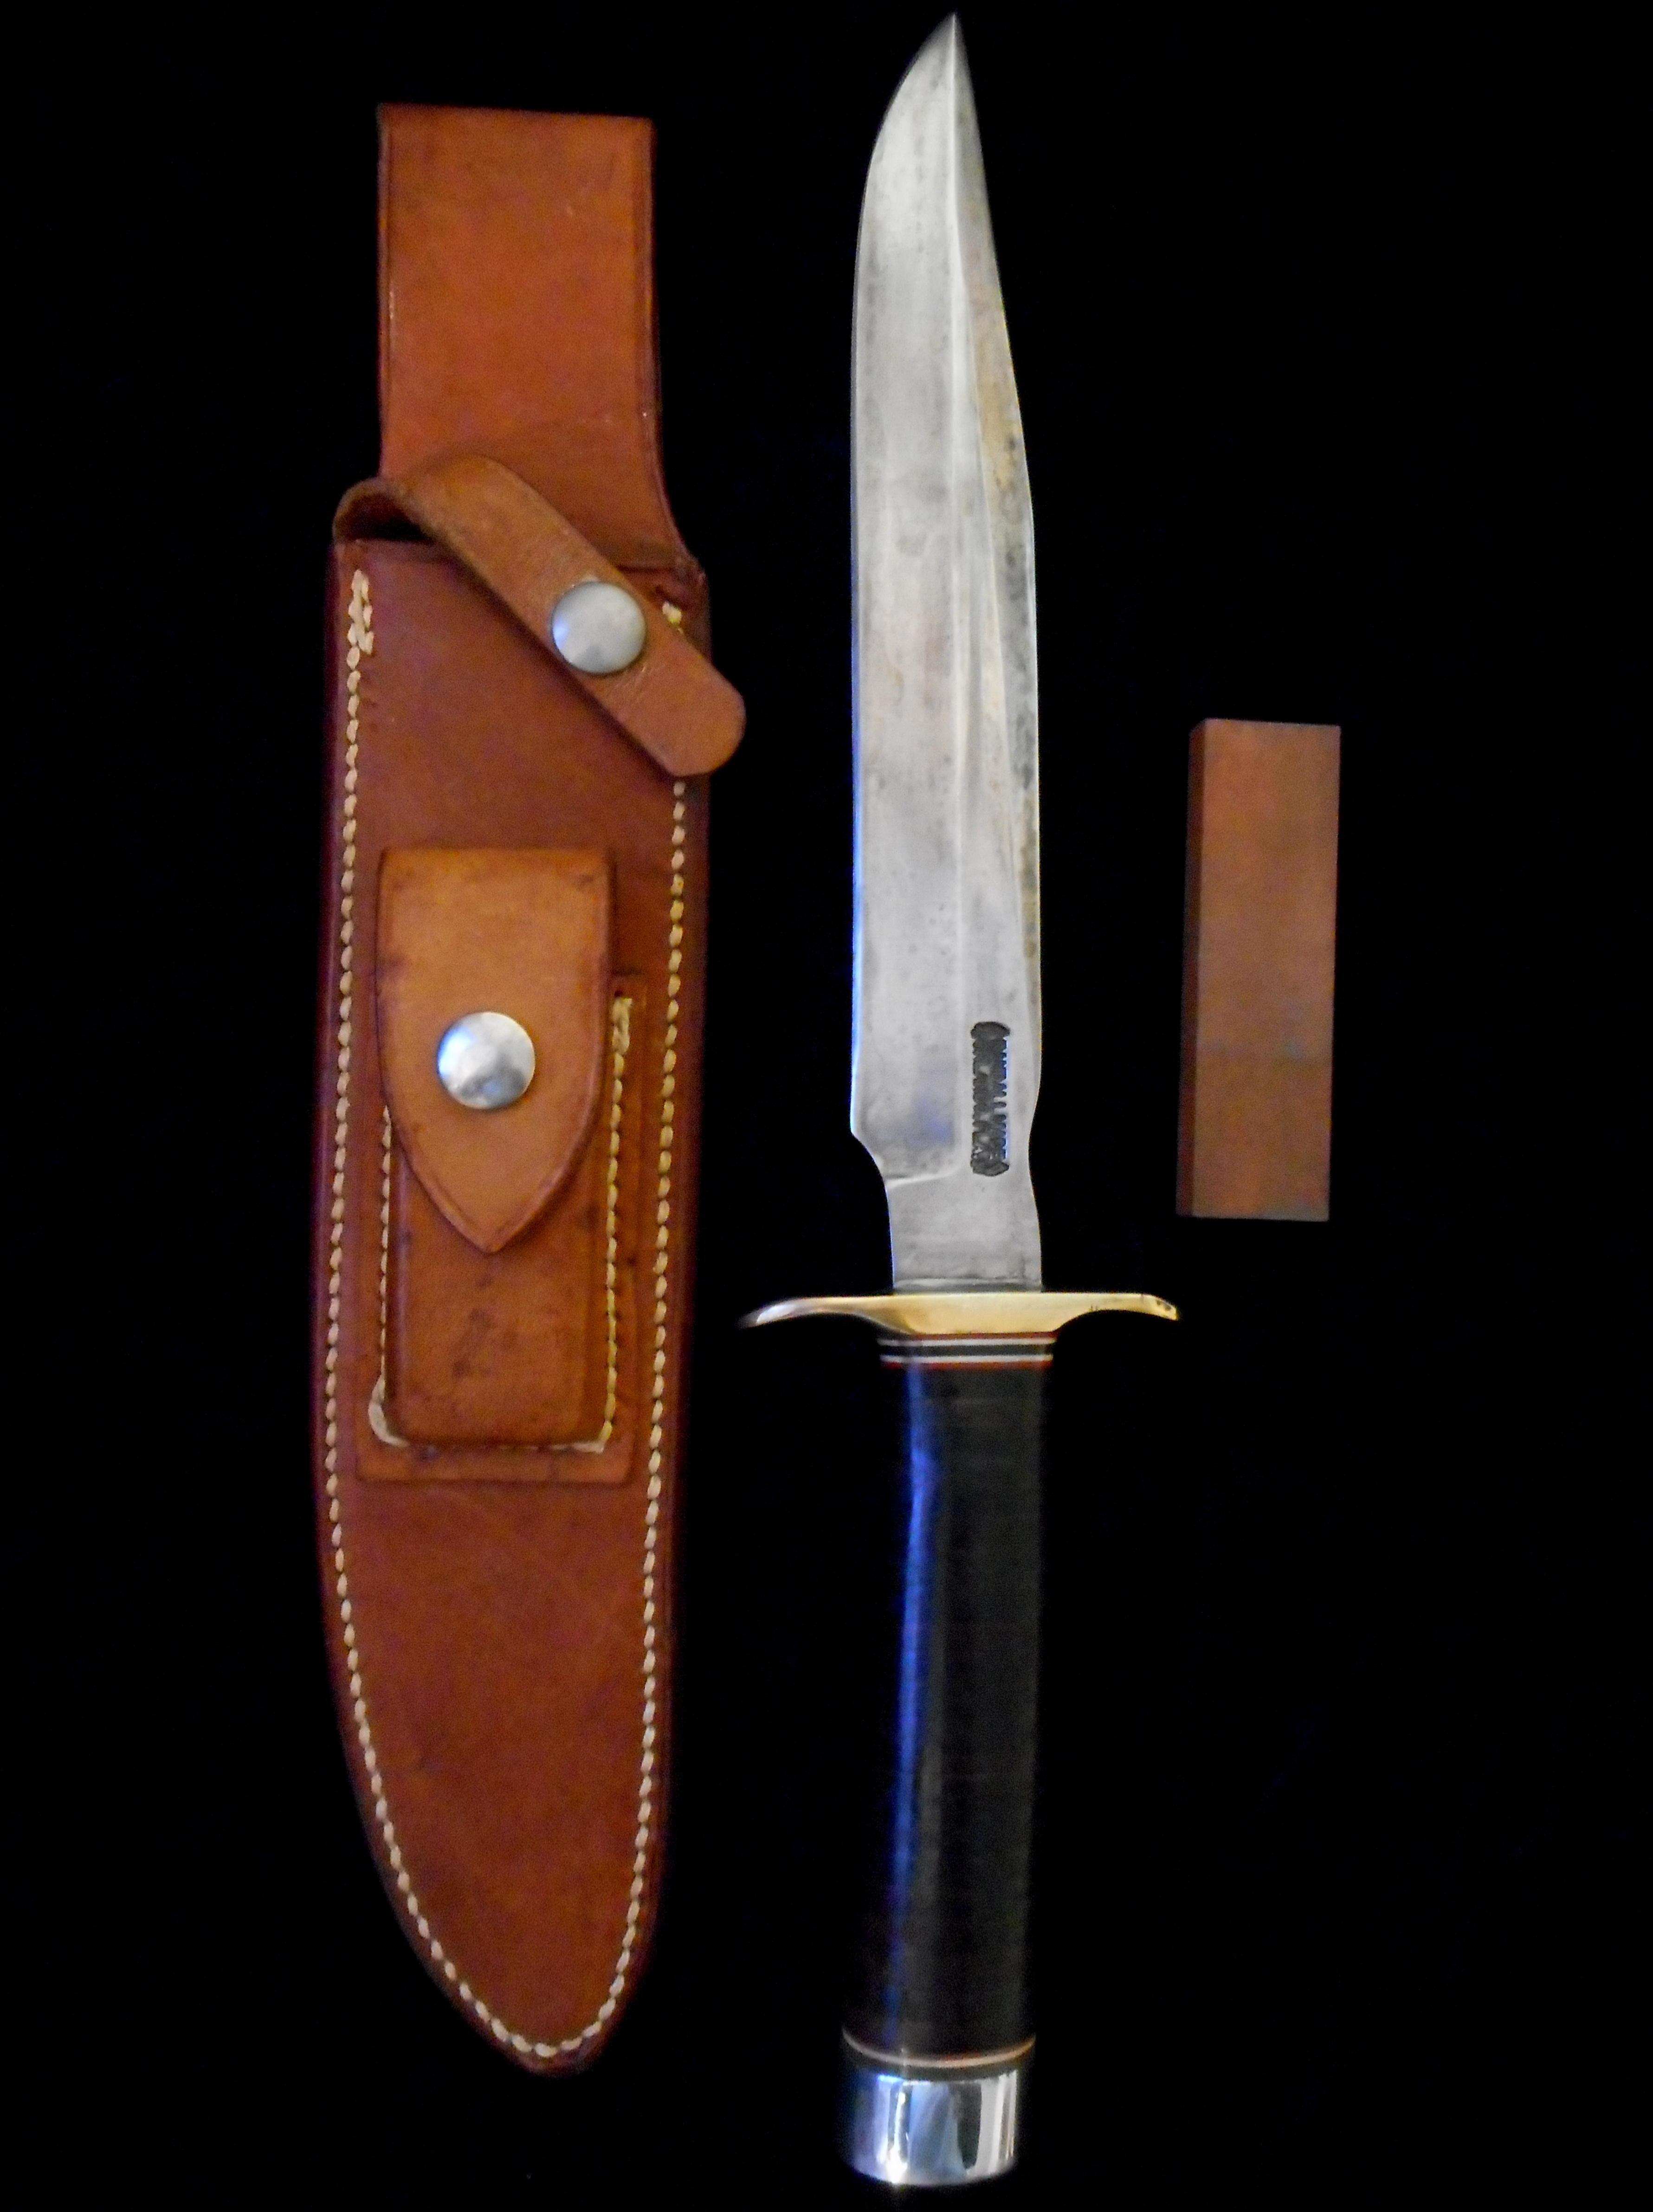 Vietnam War Randall Model 1 8 Fighting Knife Orlando Fla